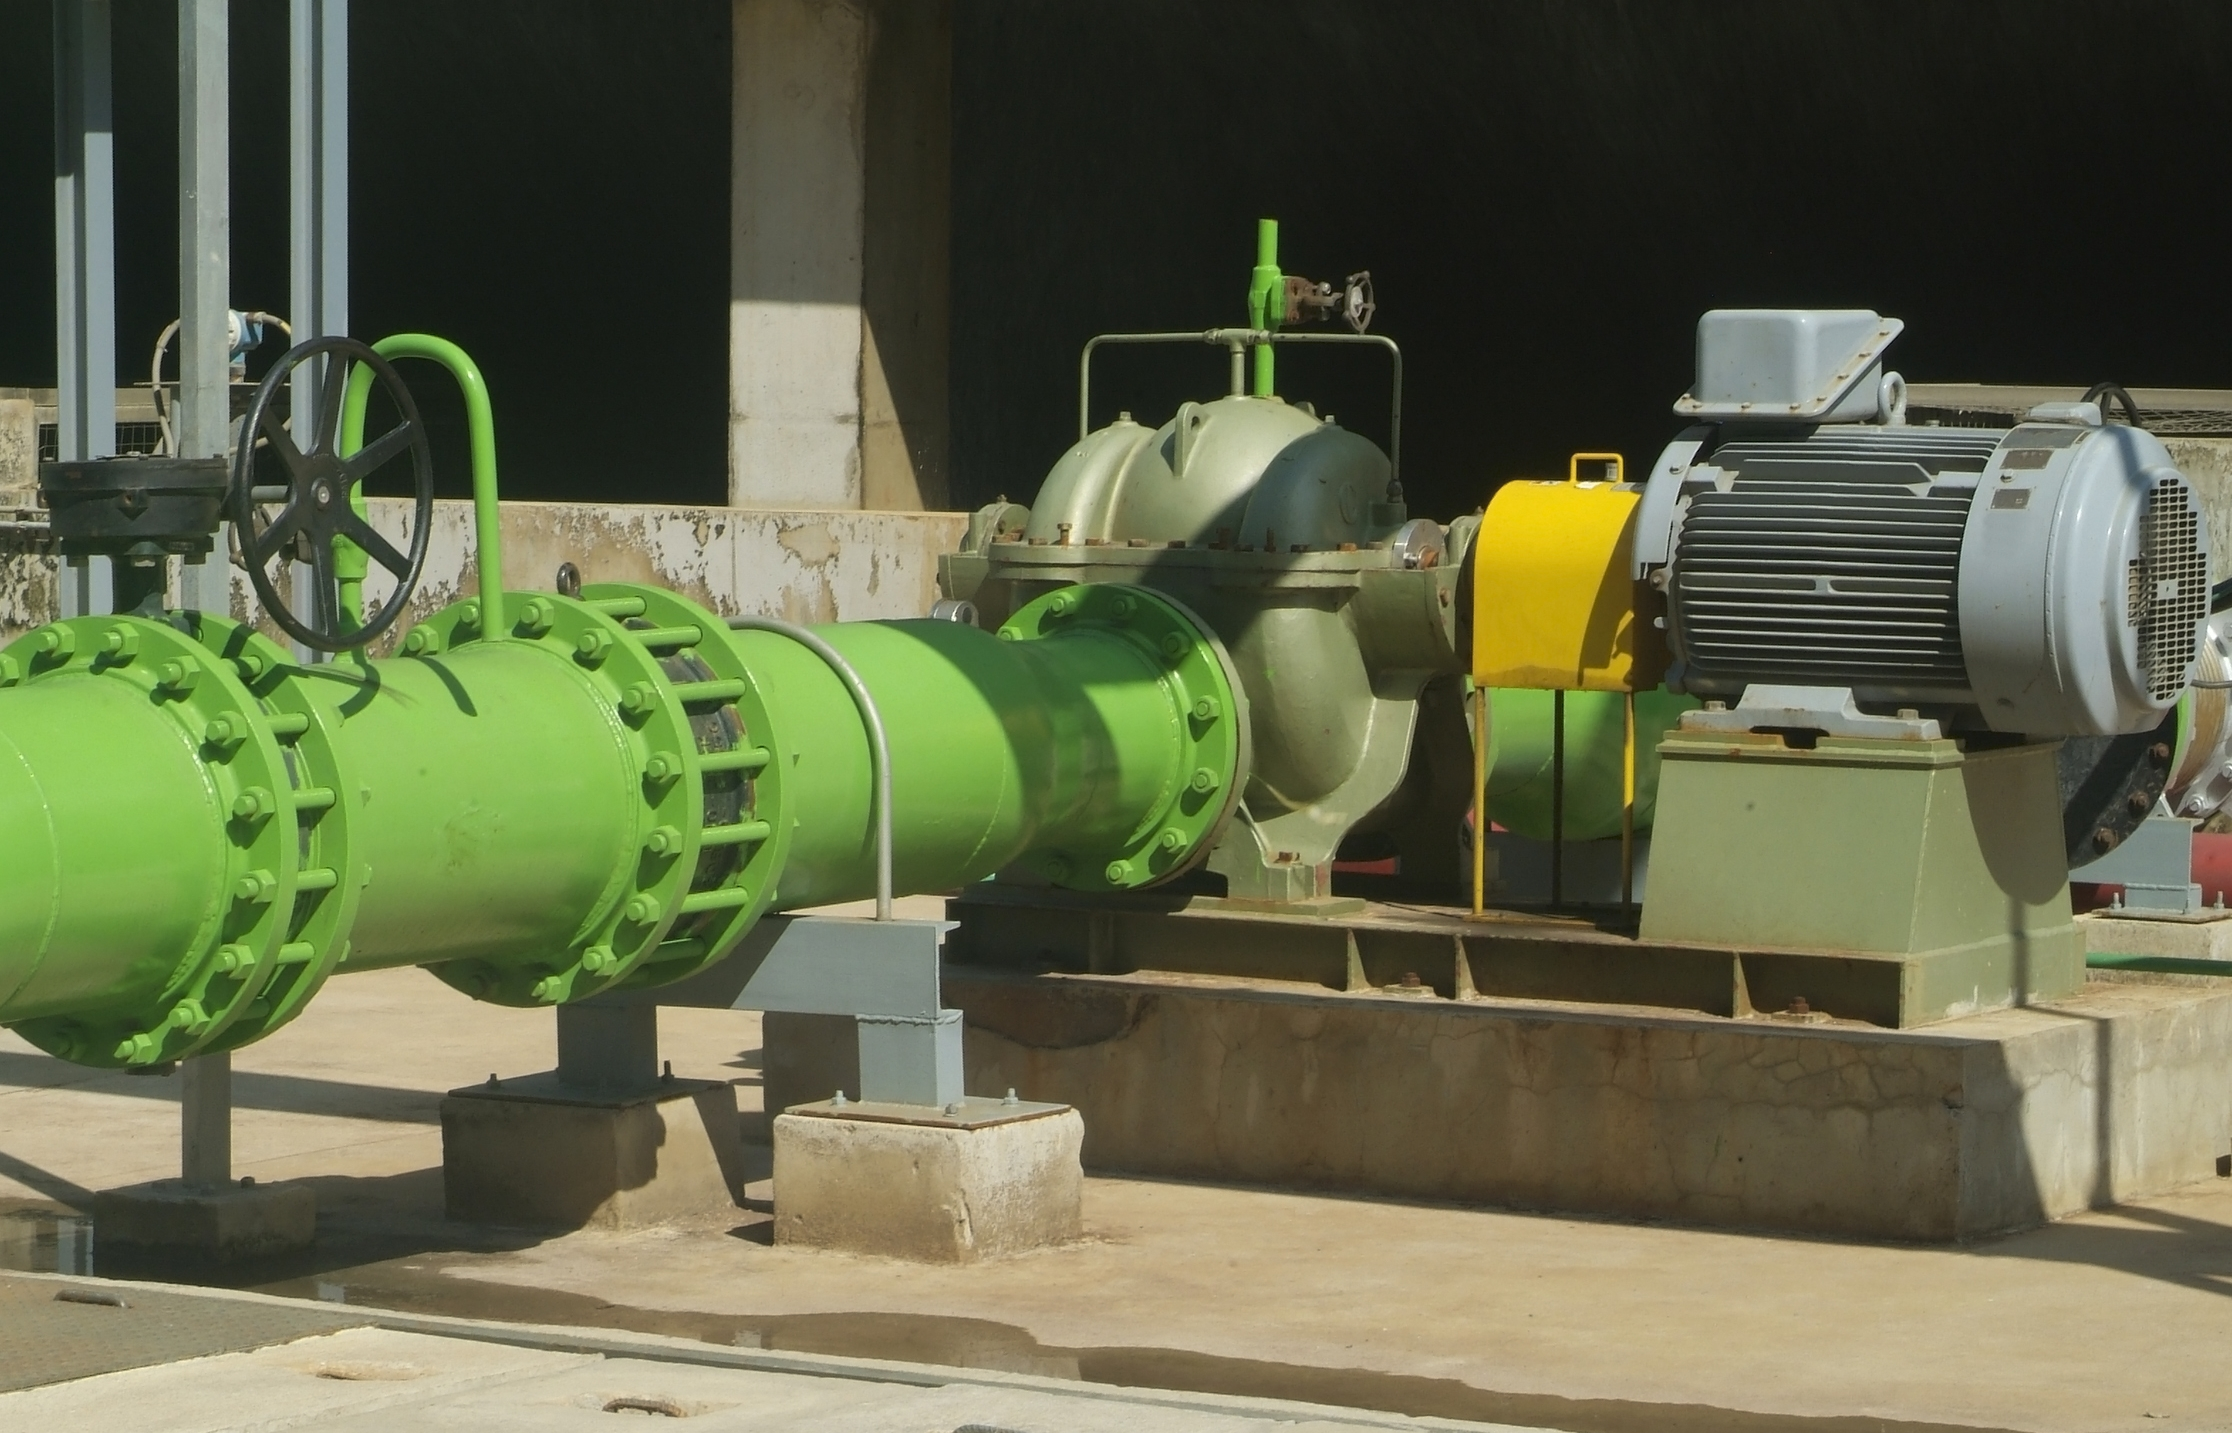 pump and pipes 2.jpg